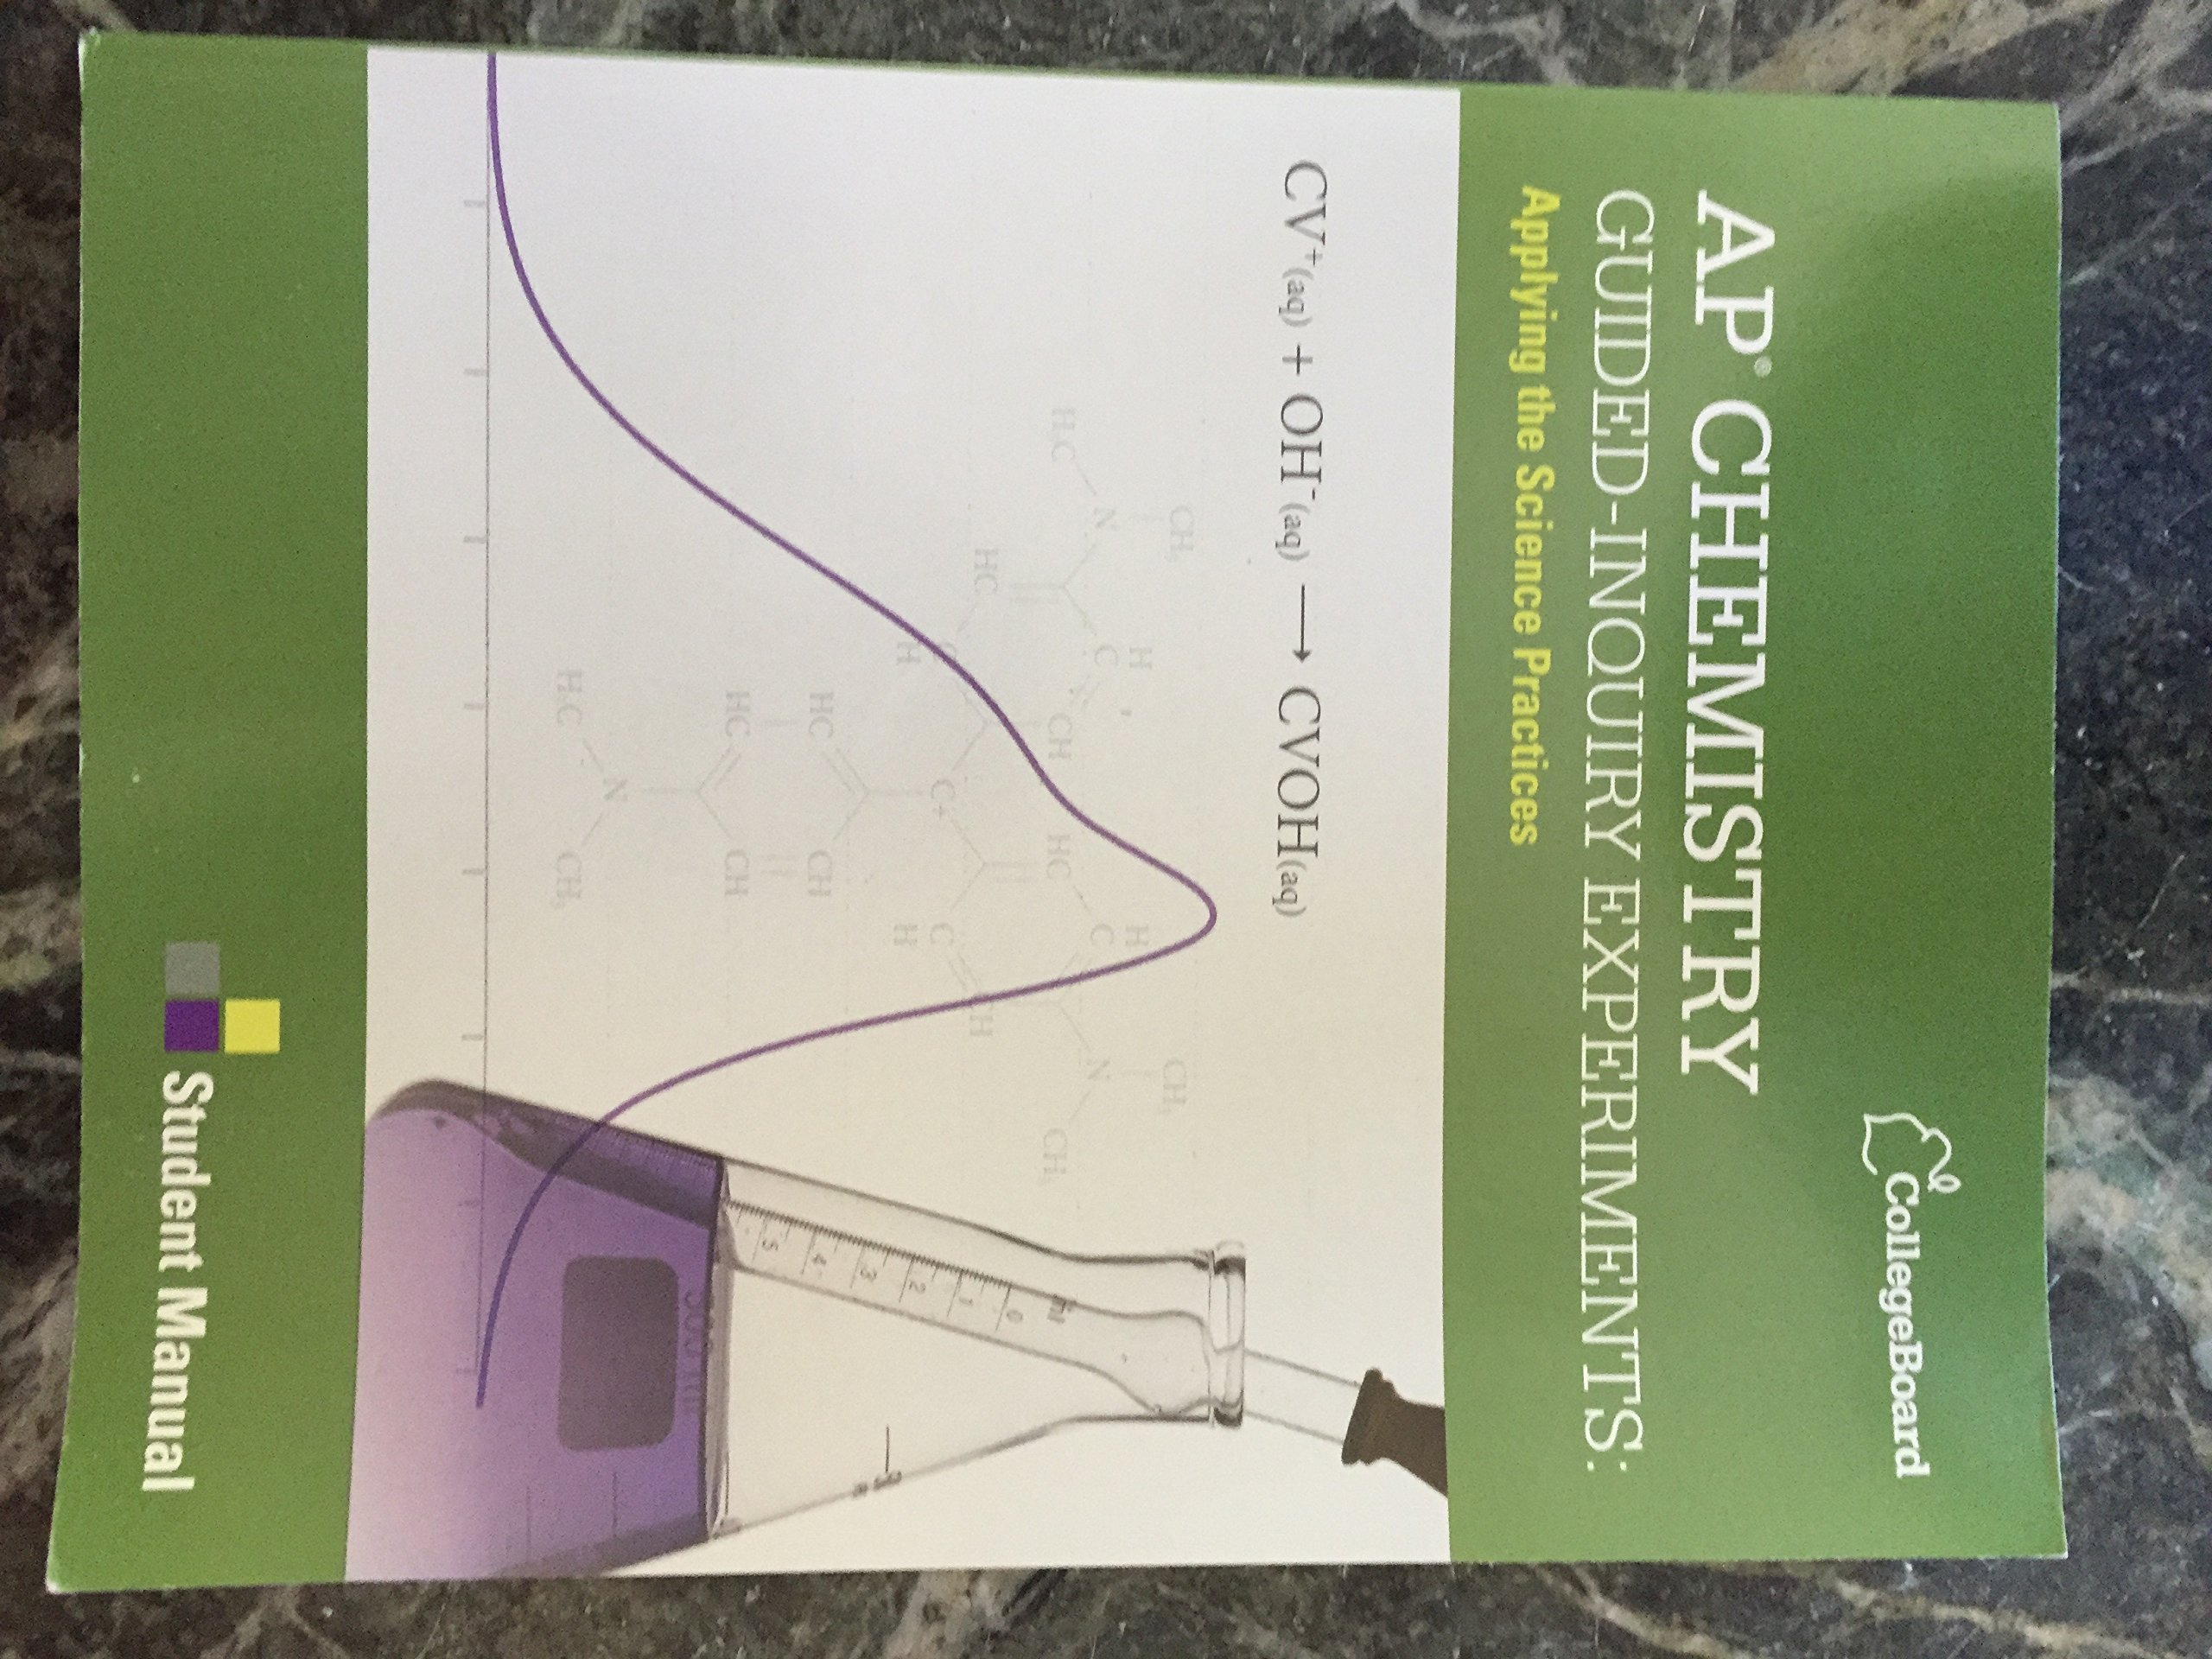 AP Chemistry Guided-Inquiry Experiments: Applying the Science Practices  Student Manual: College Board: Amazon.com: Books